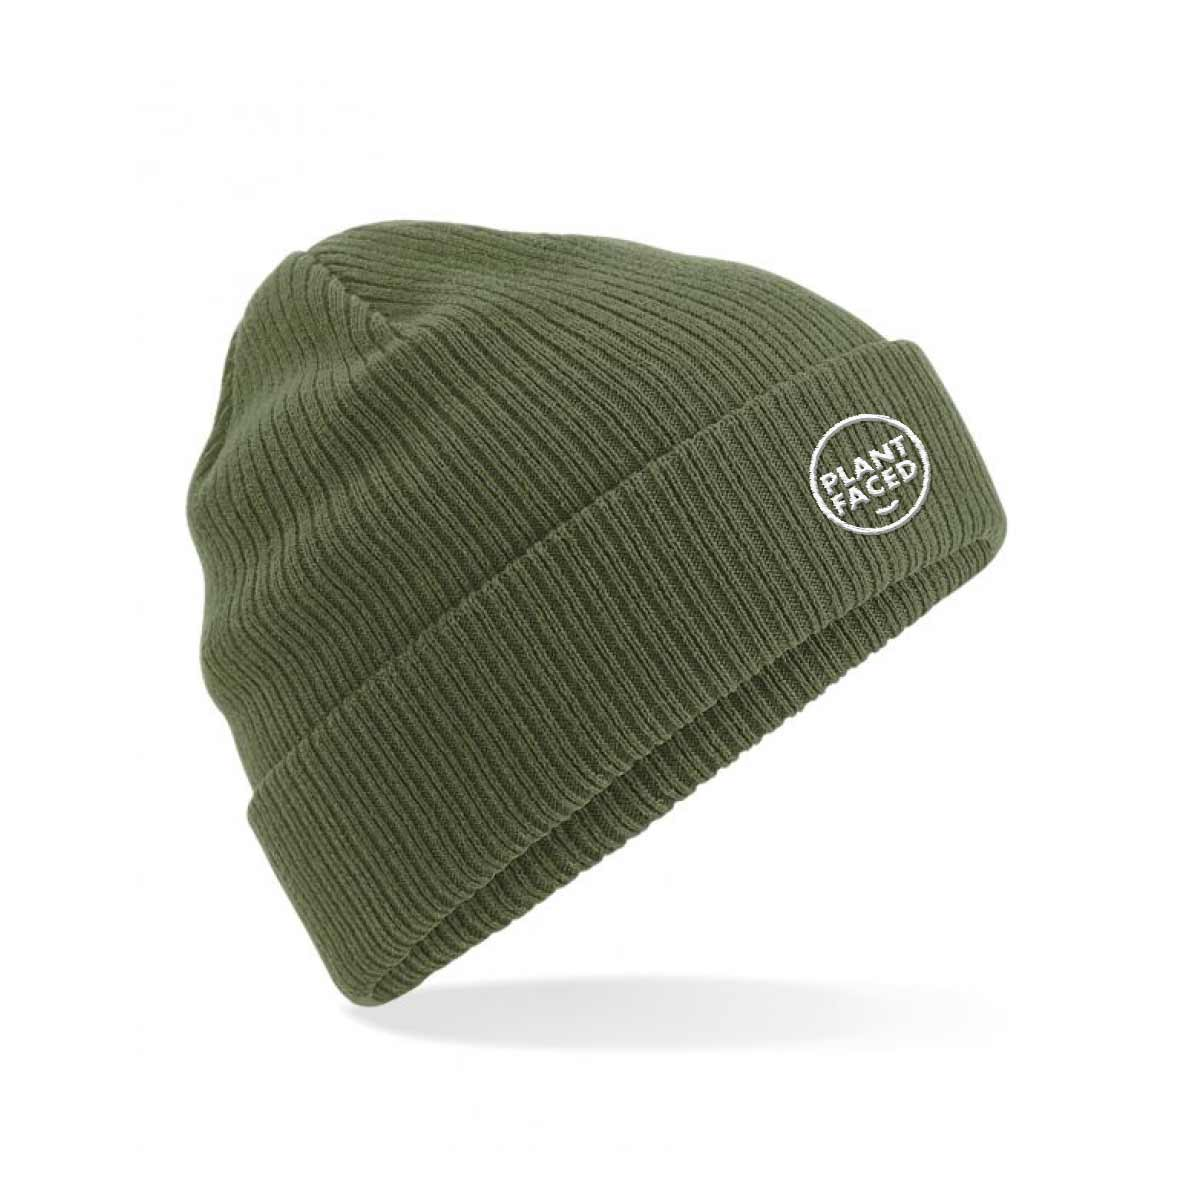 Plant Faced Organic Beanie - Fisherman Olive